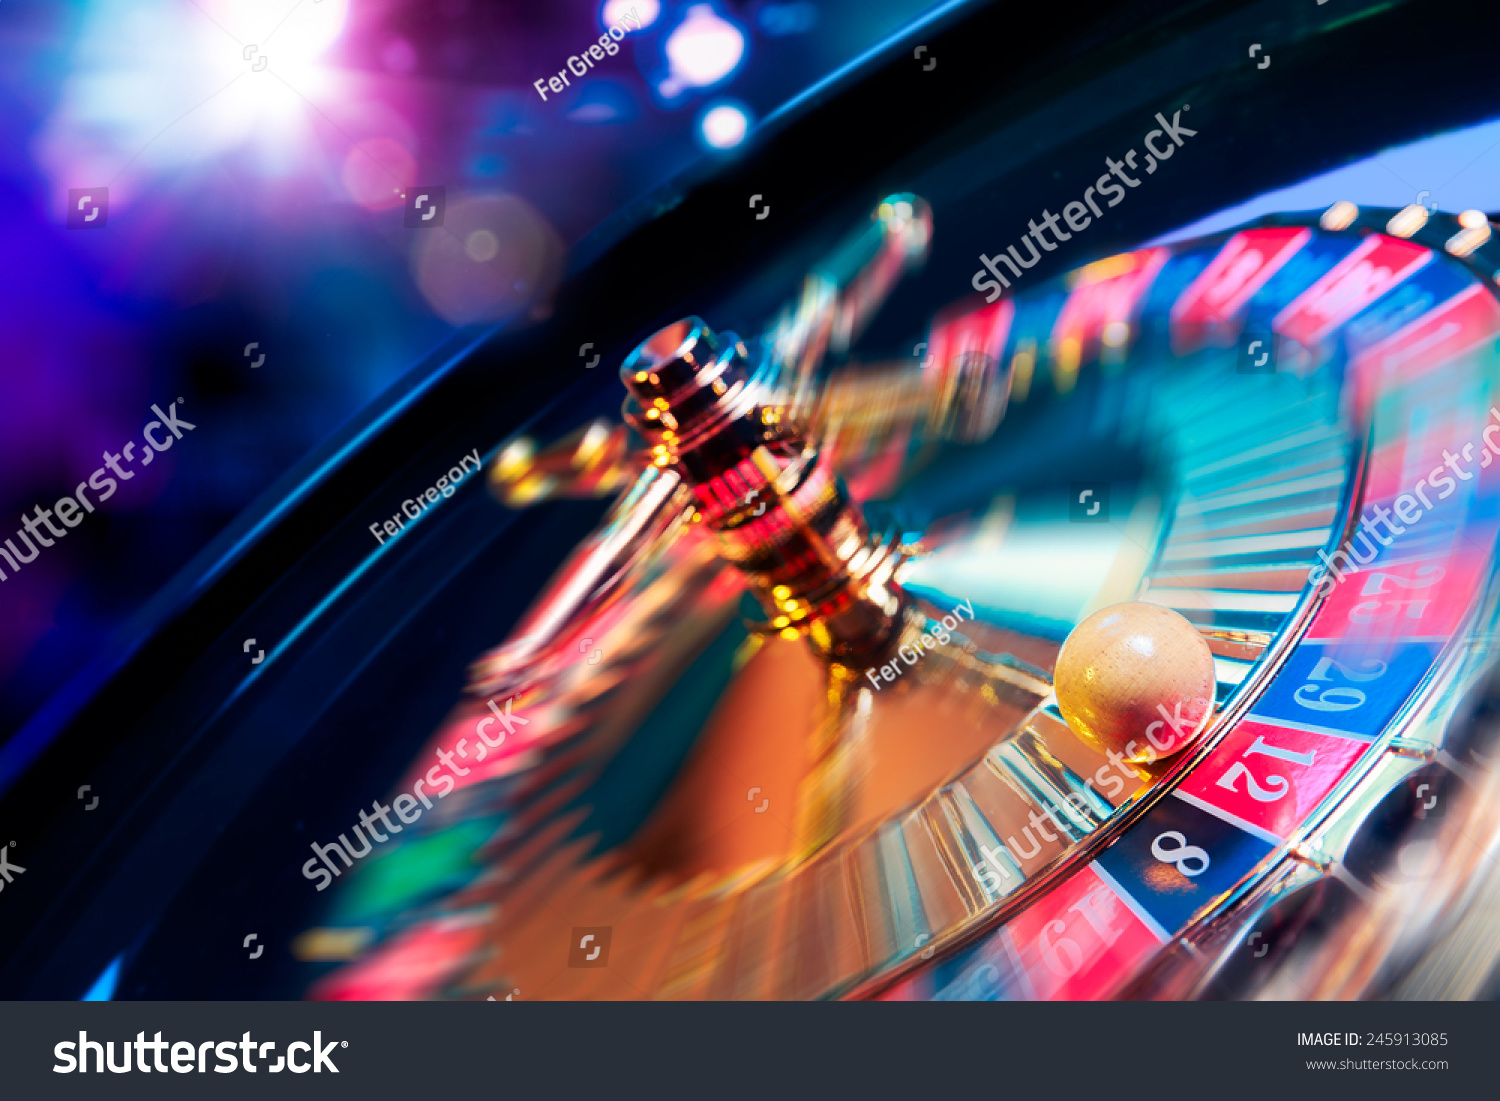 high contrast image of casino roulette in motion #245913085